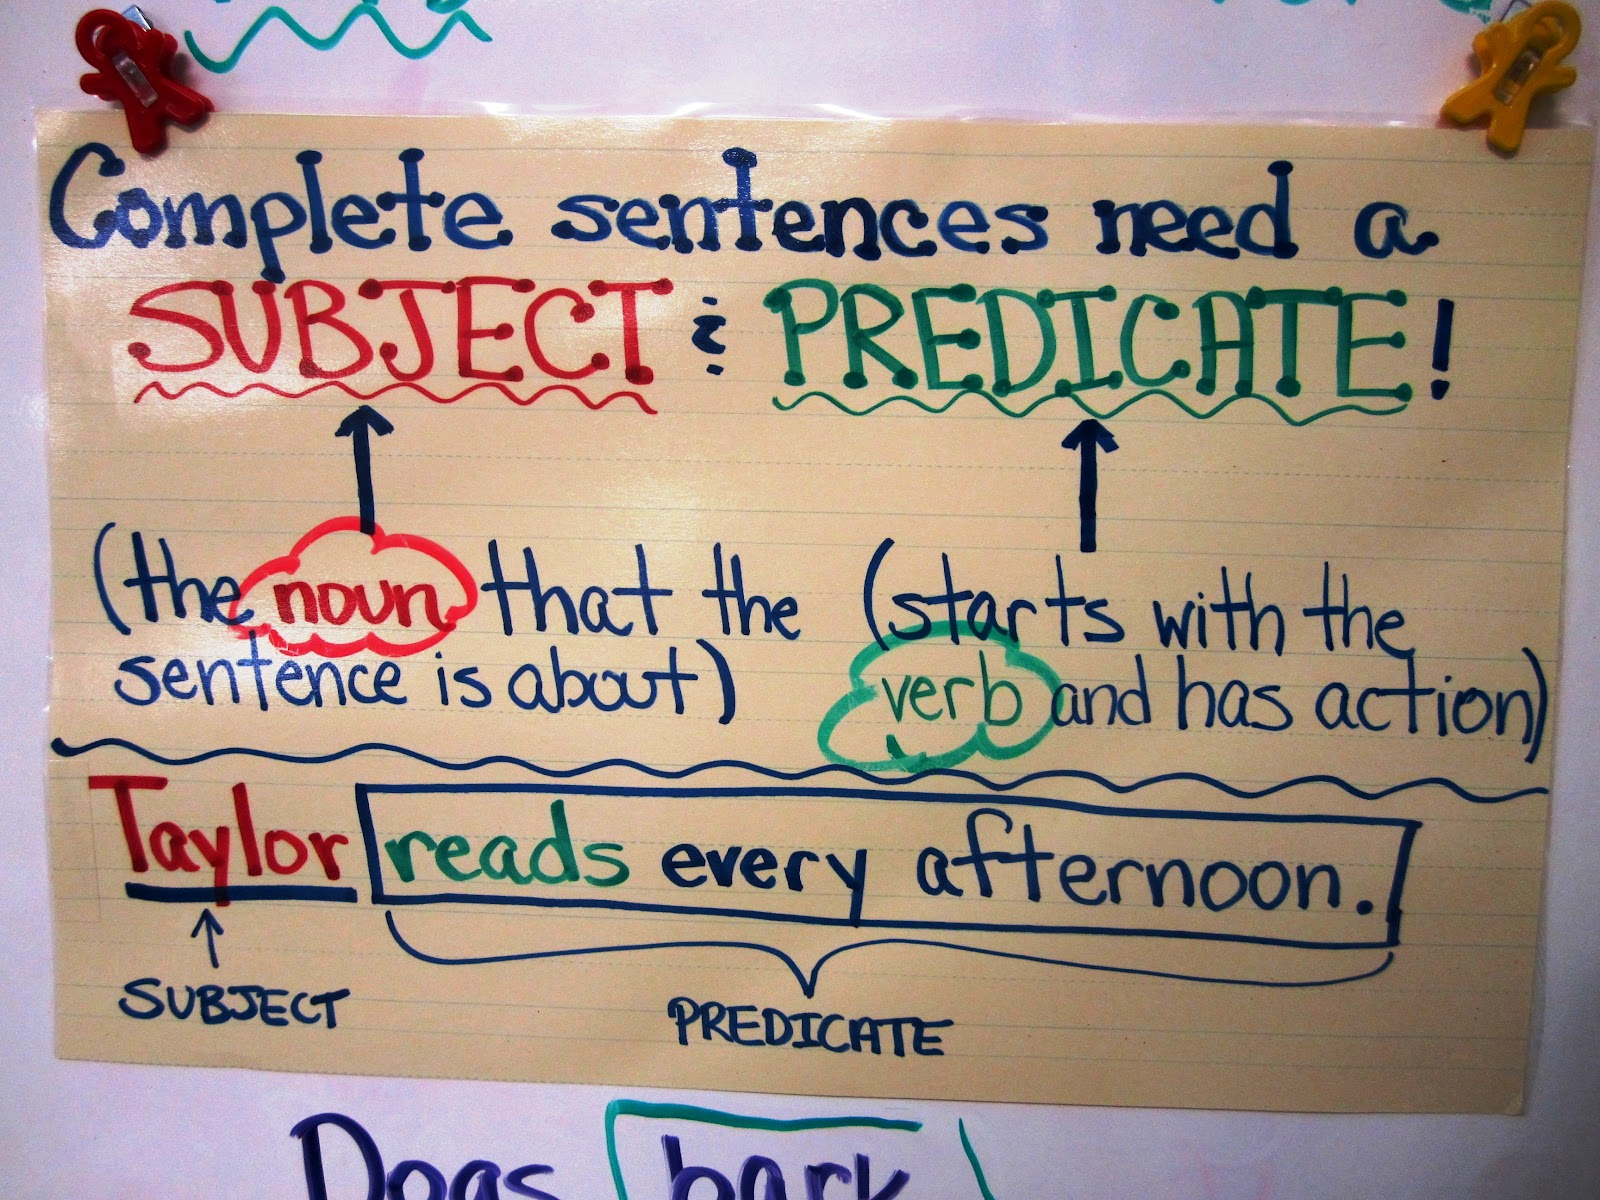 What is a Predicate? Definition, Examples of Sentence Predicates